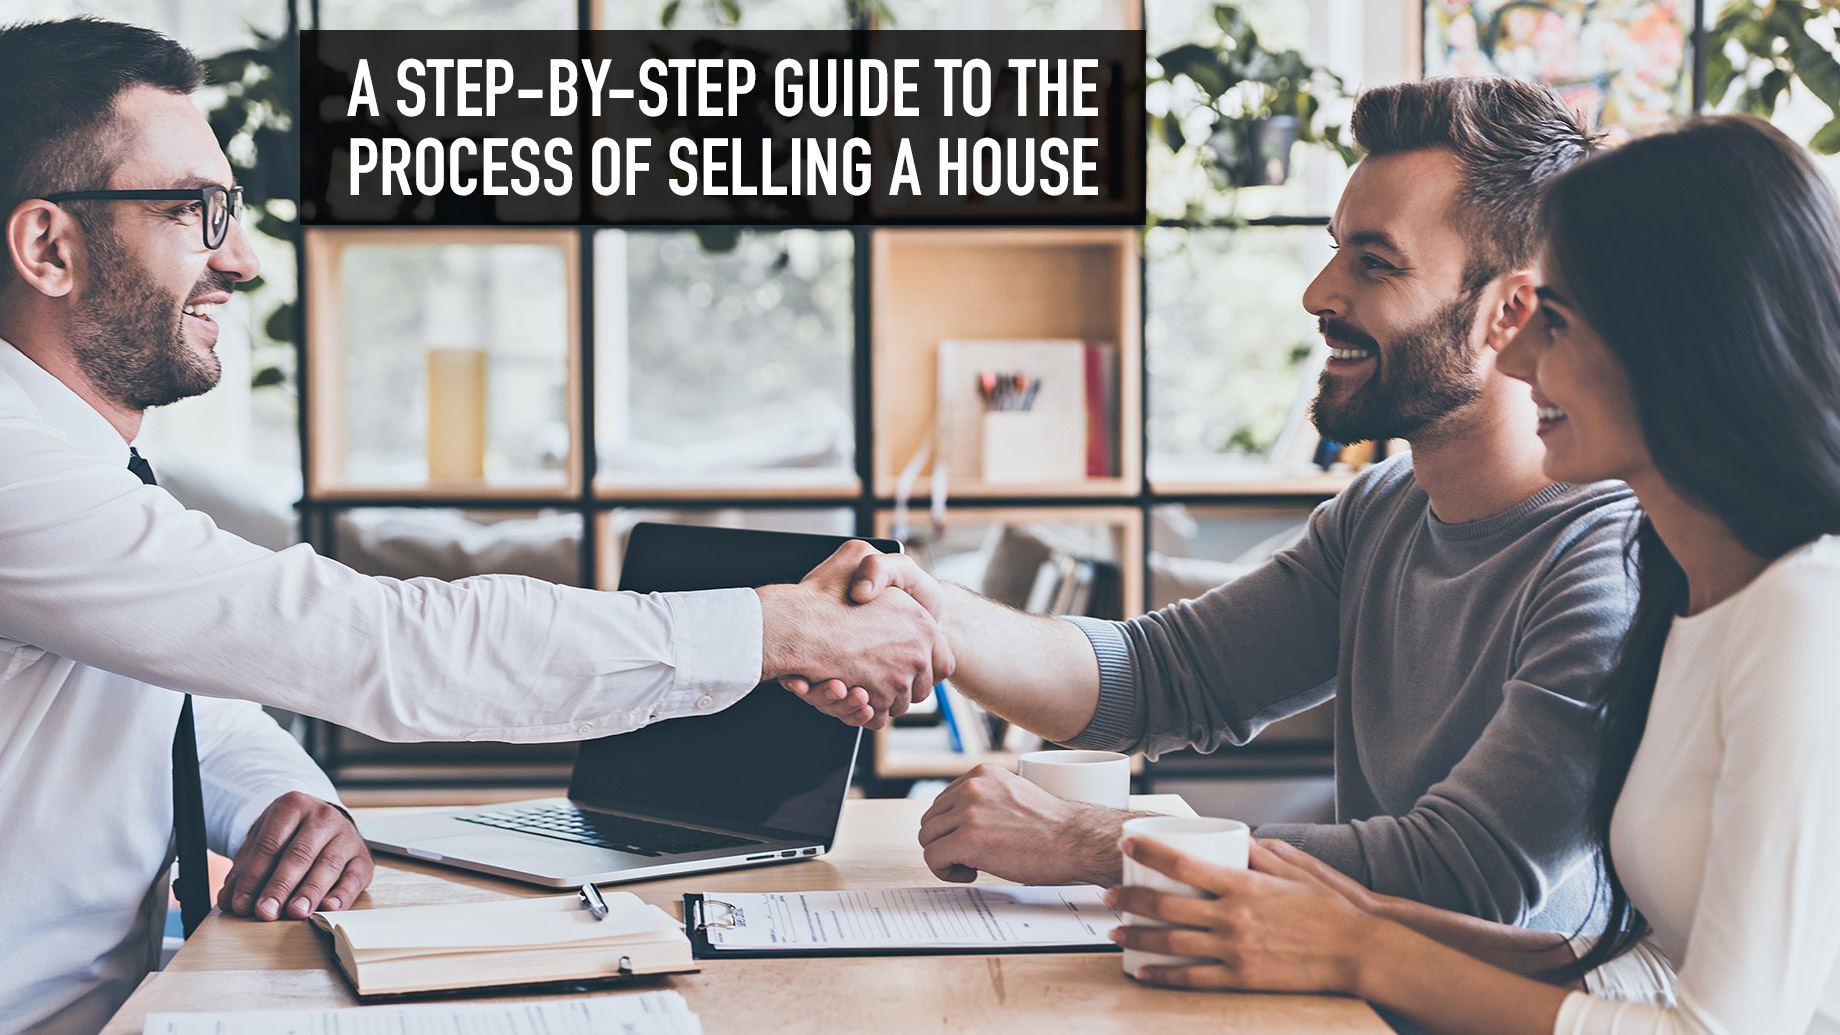 A Step-by-Step Guide to the Process of Selling a House